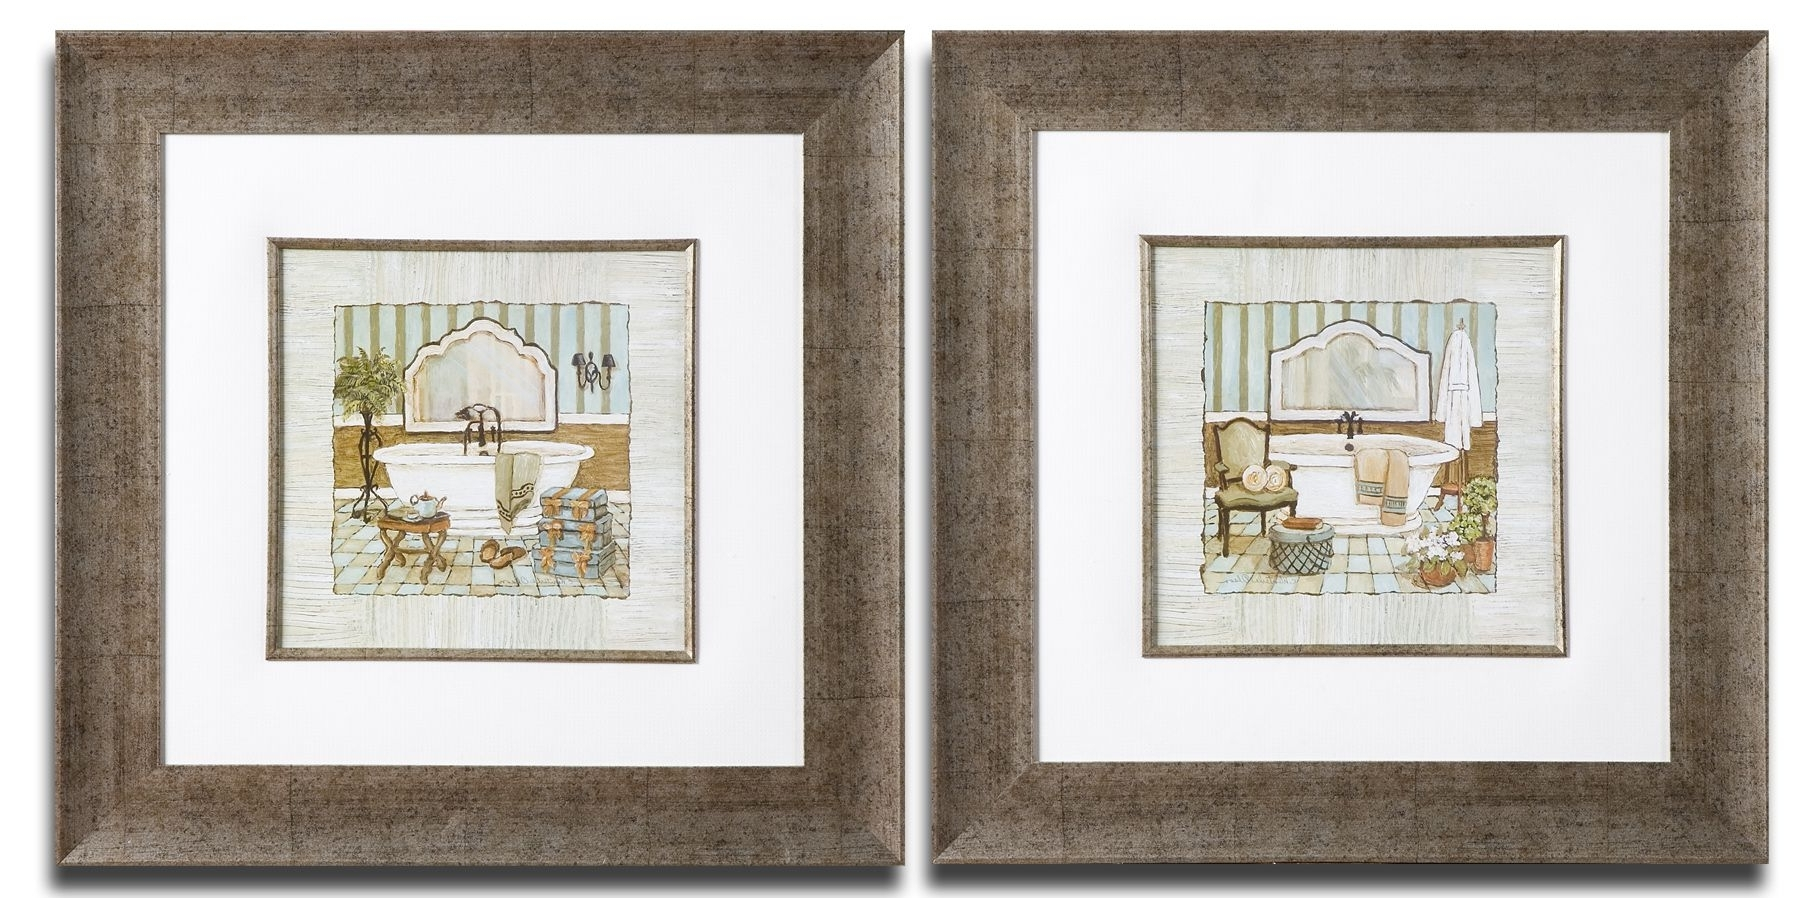 Framed Art For Bathroom, French Bathroom Prints Vintage Intended For Most Popular French Country Wall Art Prints (View 13 of 15)